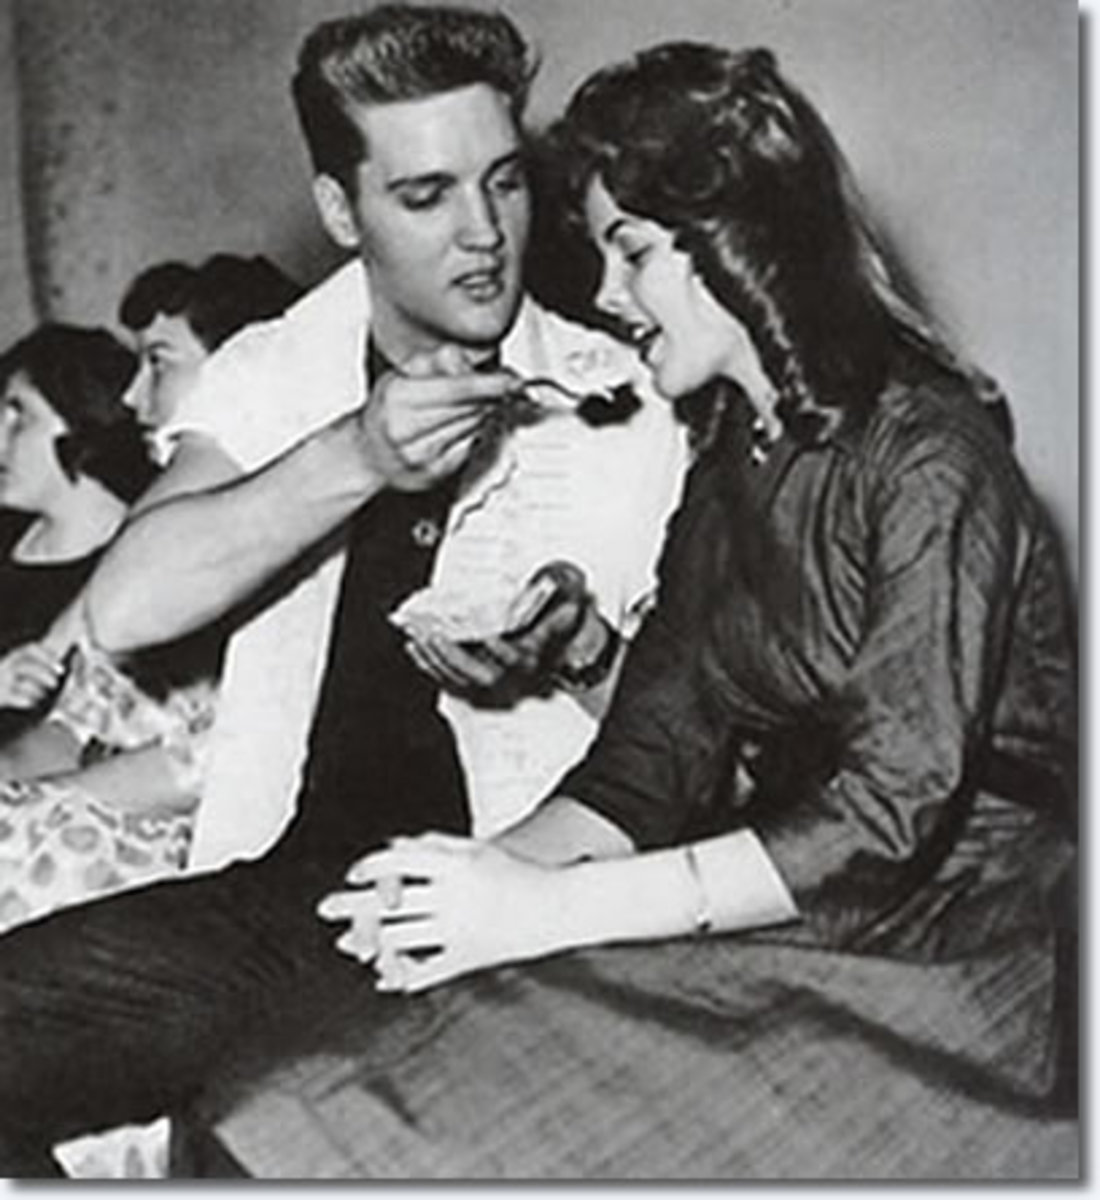 Priscilla was 14 years old when she met Elvis in Wiesbaden. In Germany, Priscilla would hang out at the Eagles Club, a place for eating and entertainment.